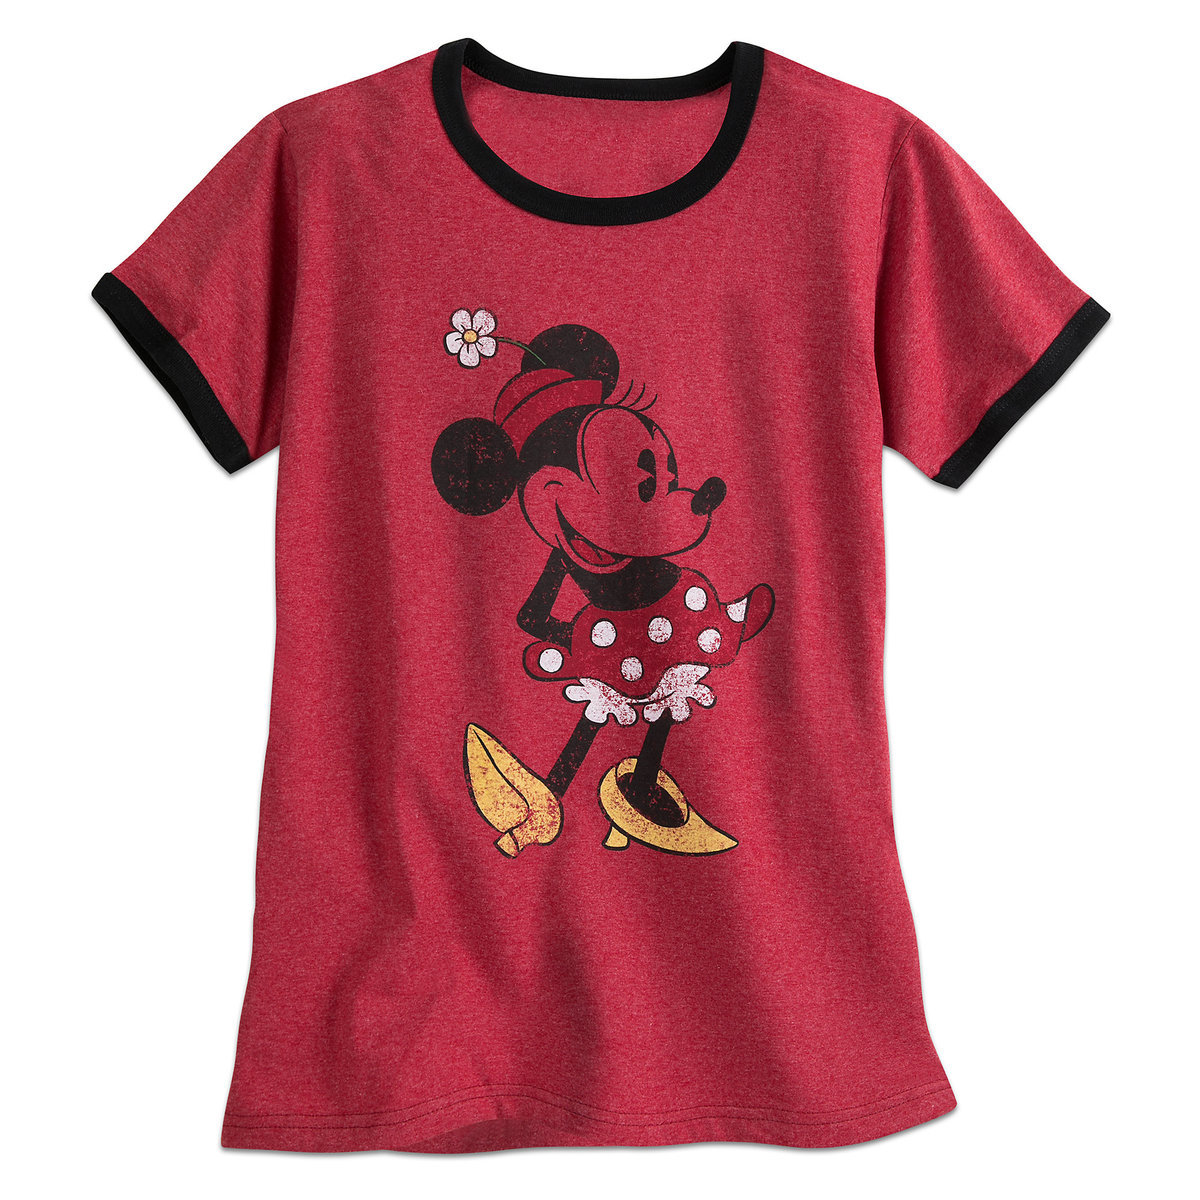 b201e81e Product Image of Minnie Mouse Classic Ringer Tee for Women # 1